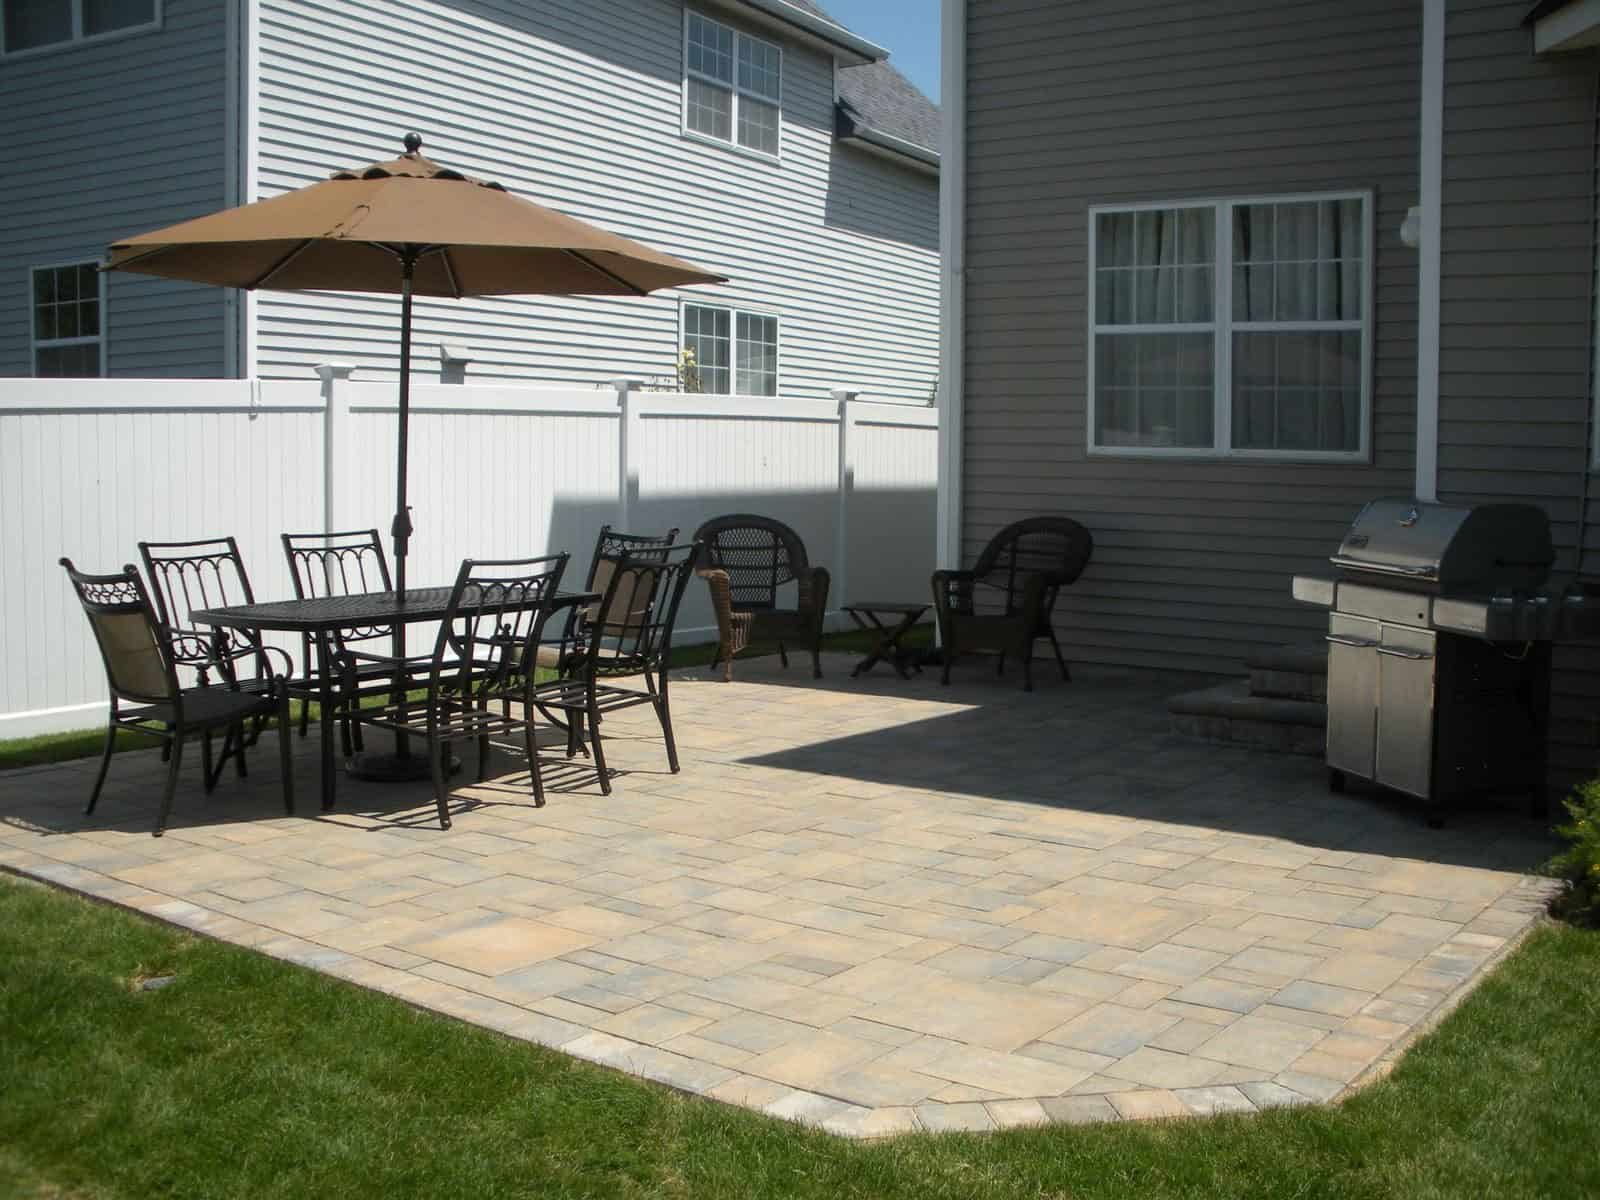 Paver Patio - Cambridge Ledgestone Paver Patio - Toffee/Onyx - Random Pattern - Melville, Long Island NY